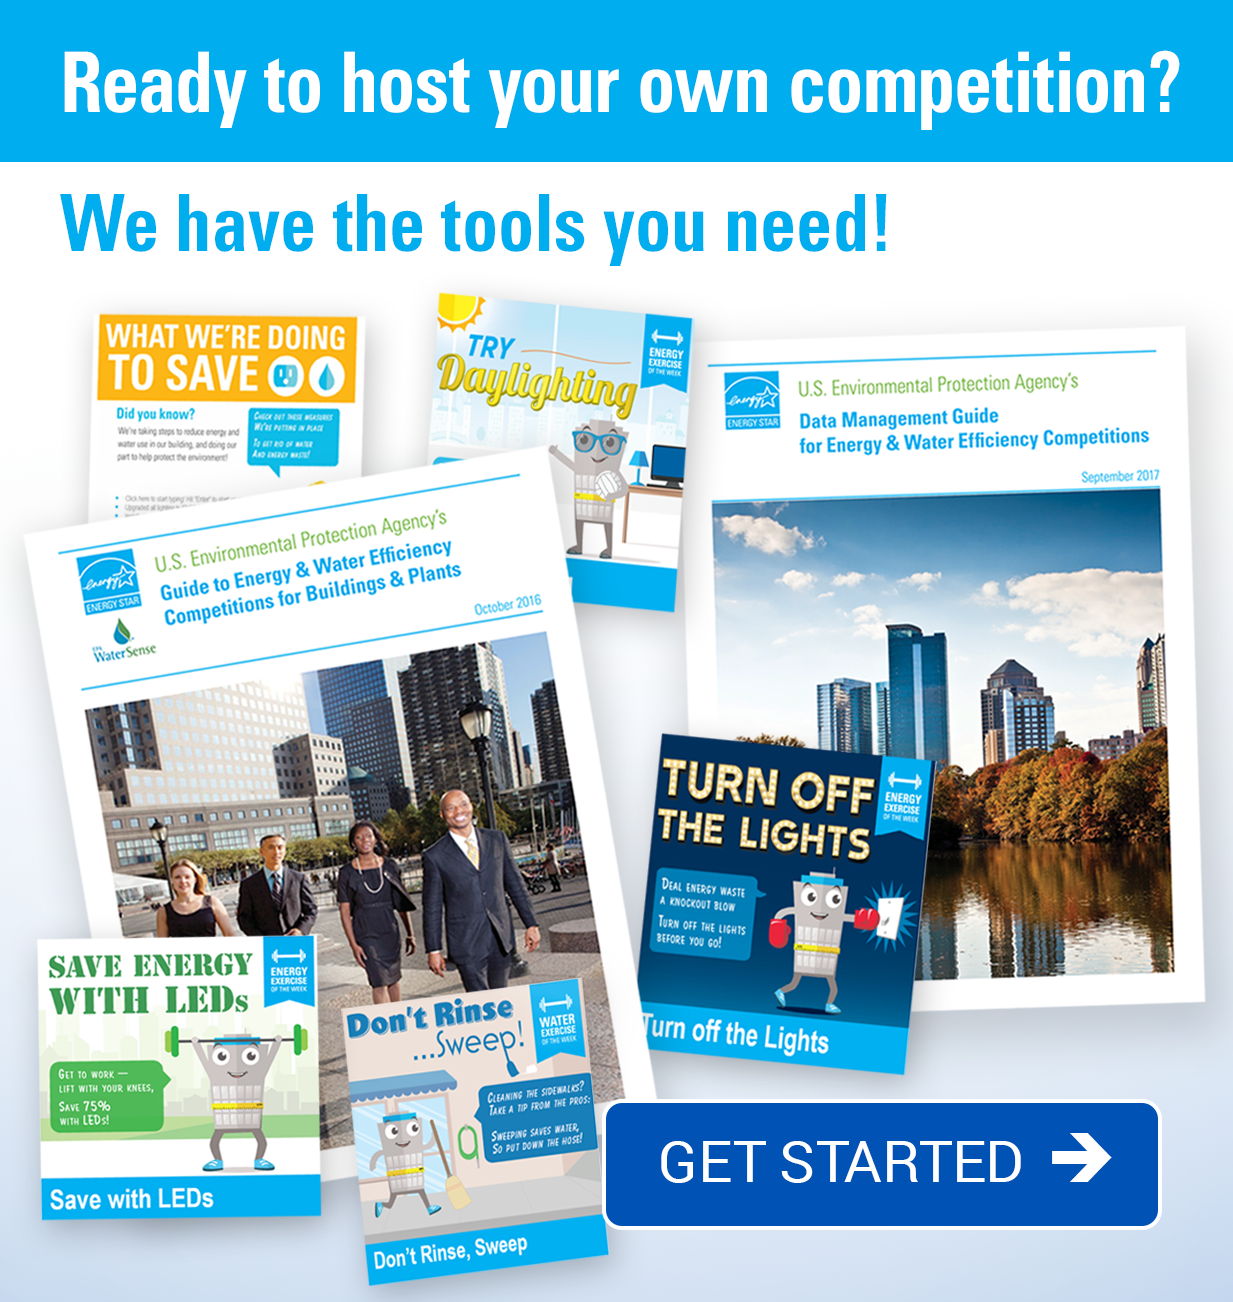 Ready to host your own competition?